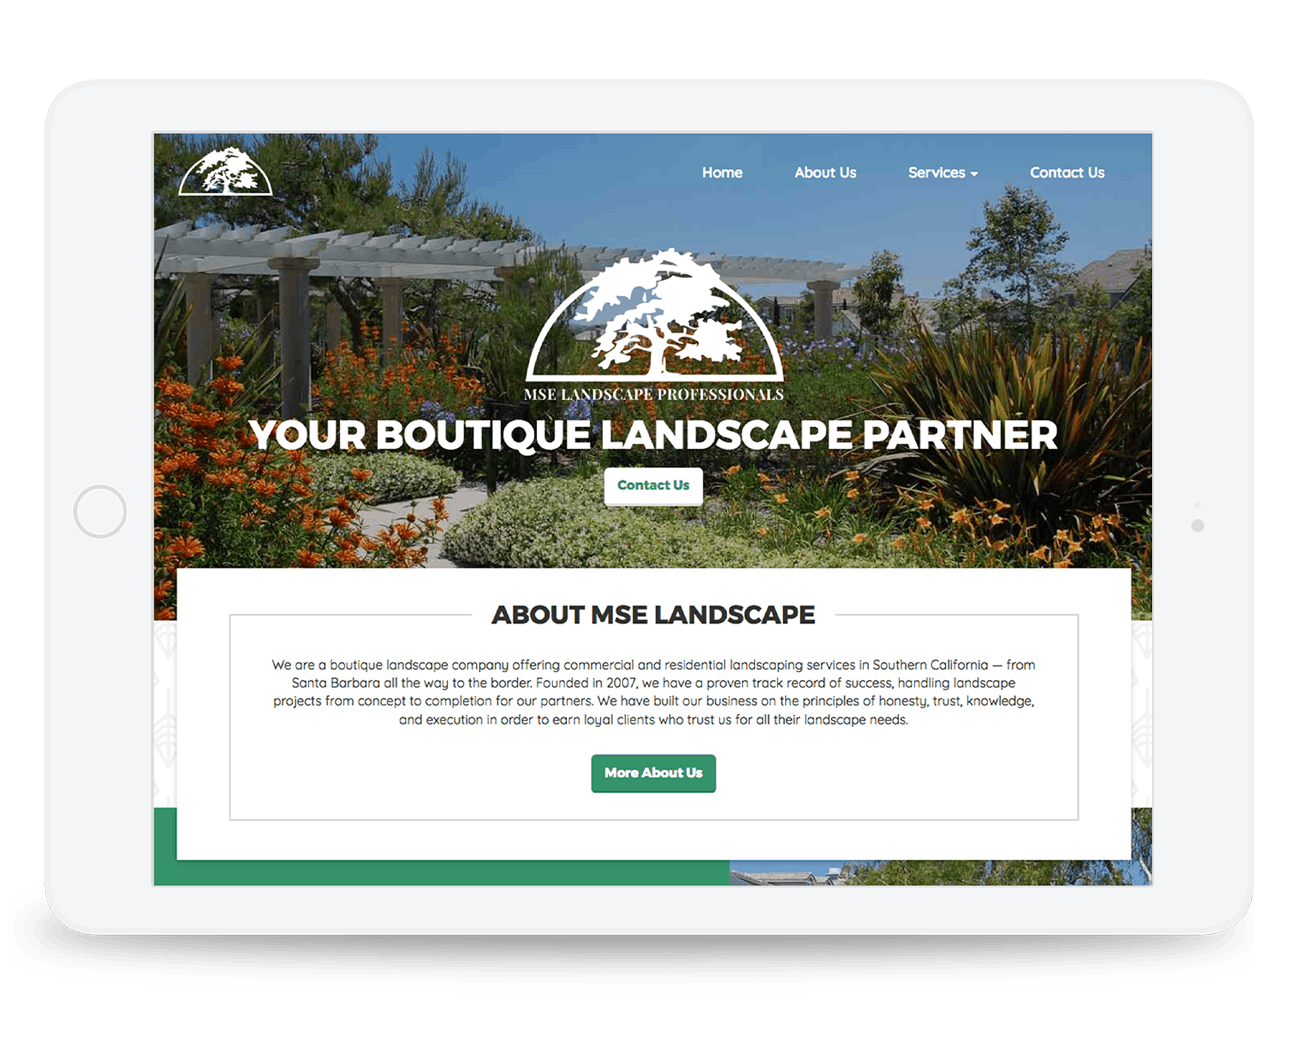 We worked with MSE Landscape Professionals, a landscaping company based in Escondido, California, to redesign their website and improve their search rankings.